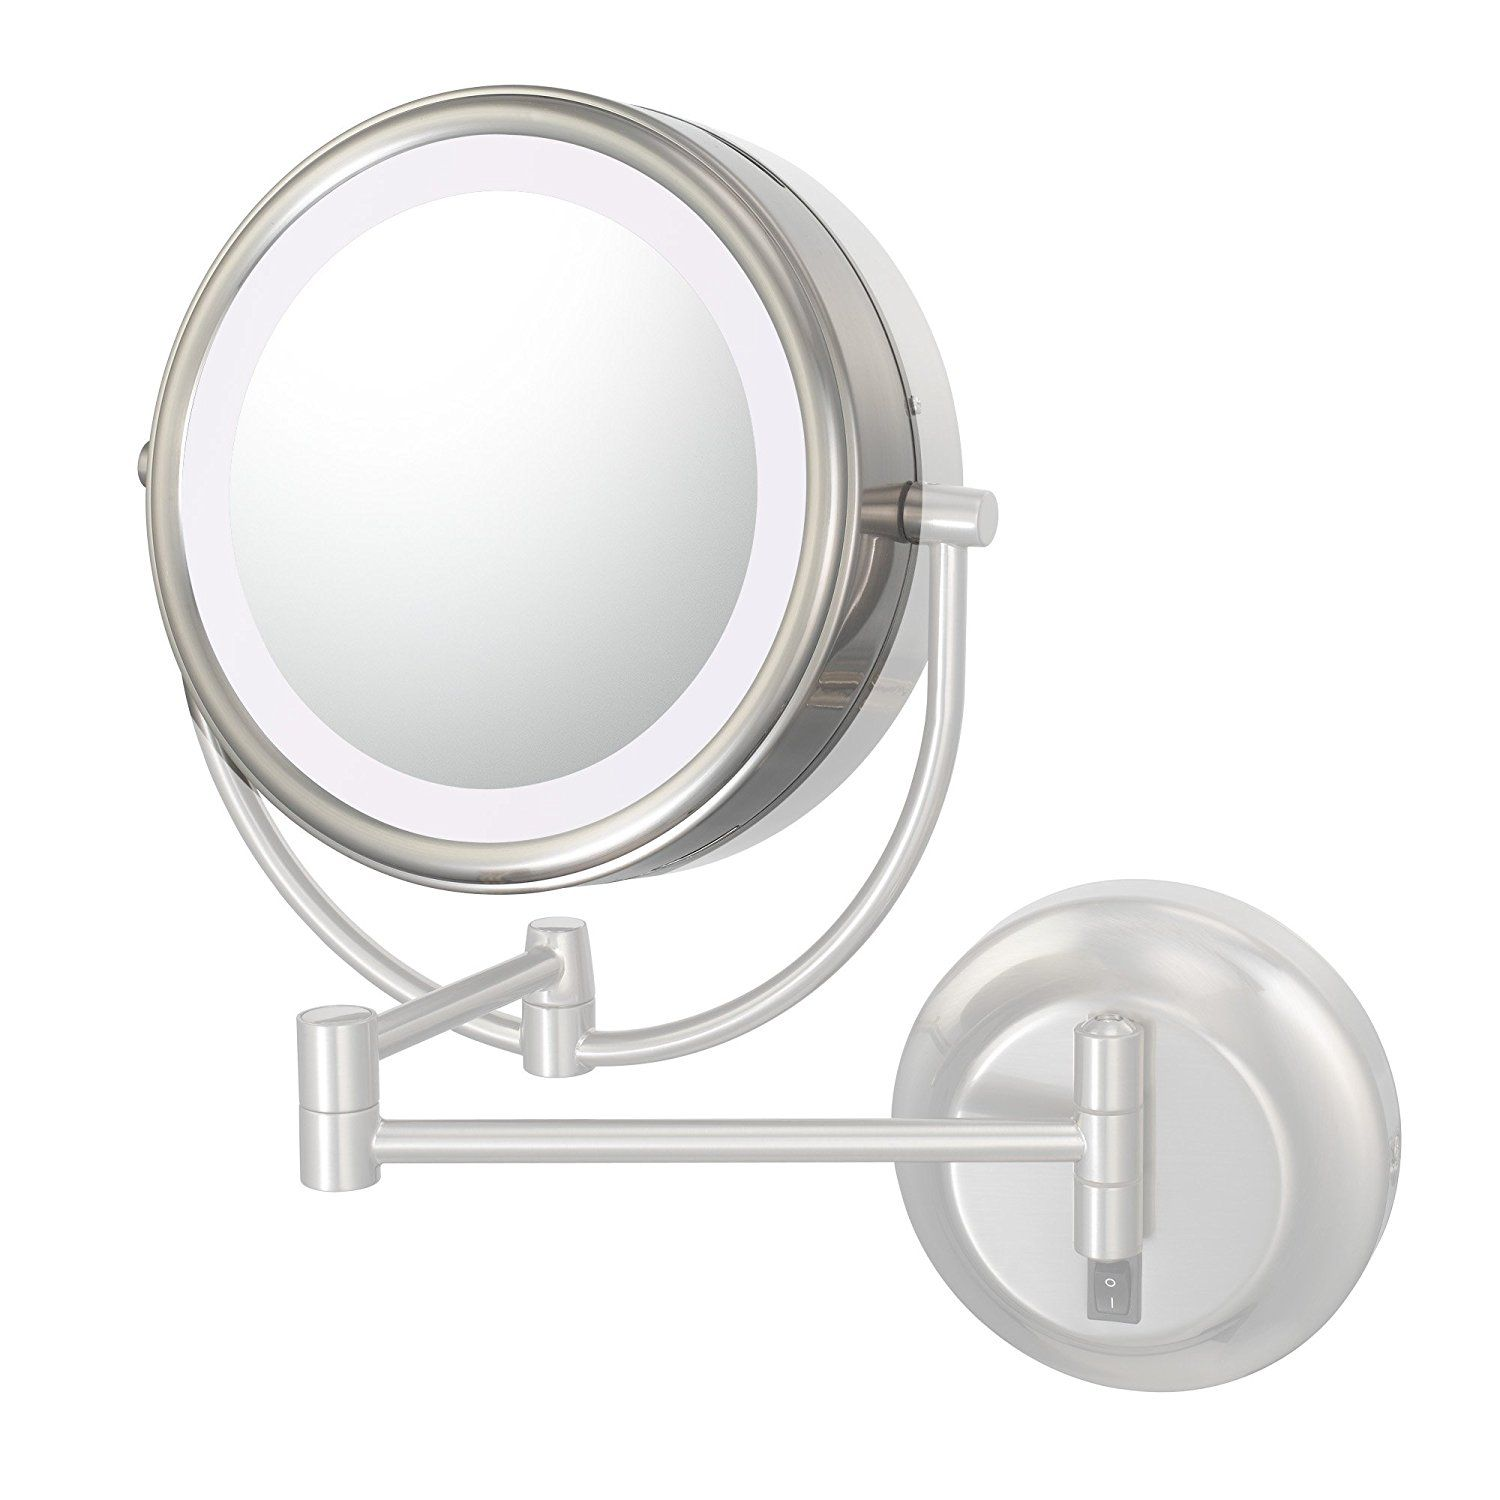 Kimball and Young 72592577L Optional Lens and Frame for